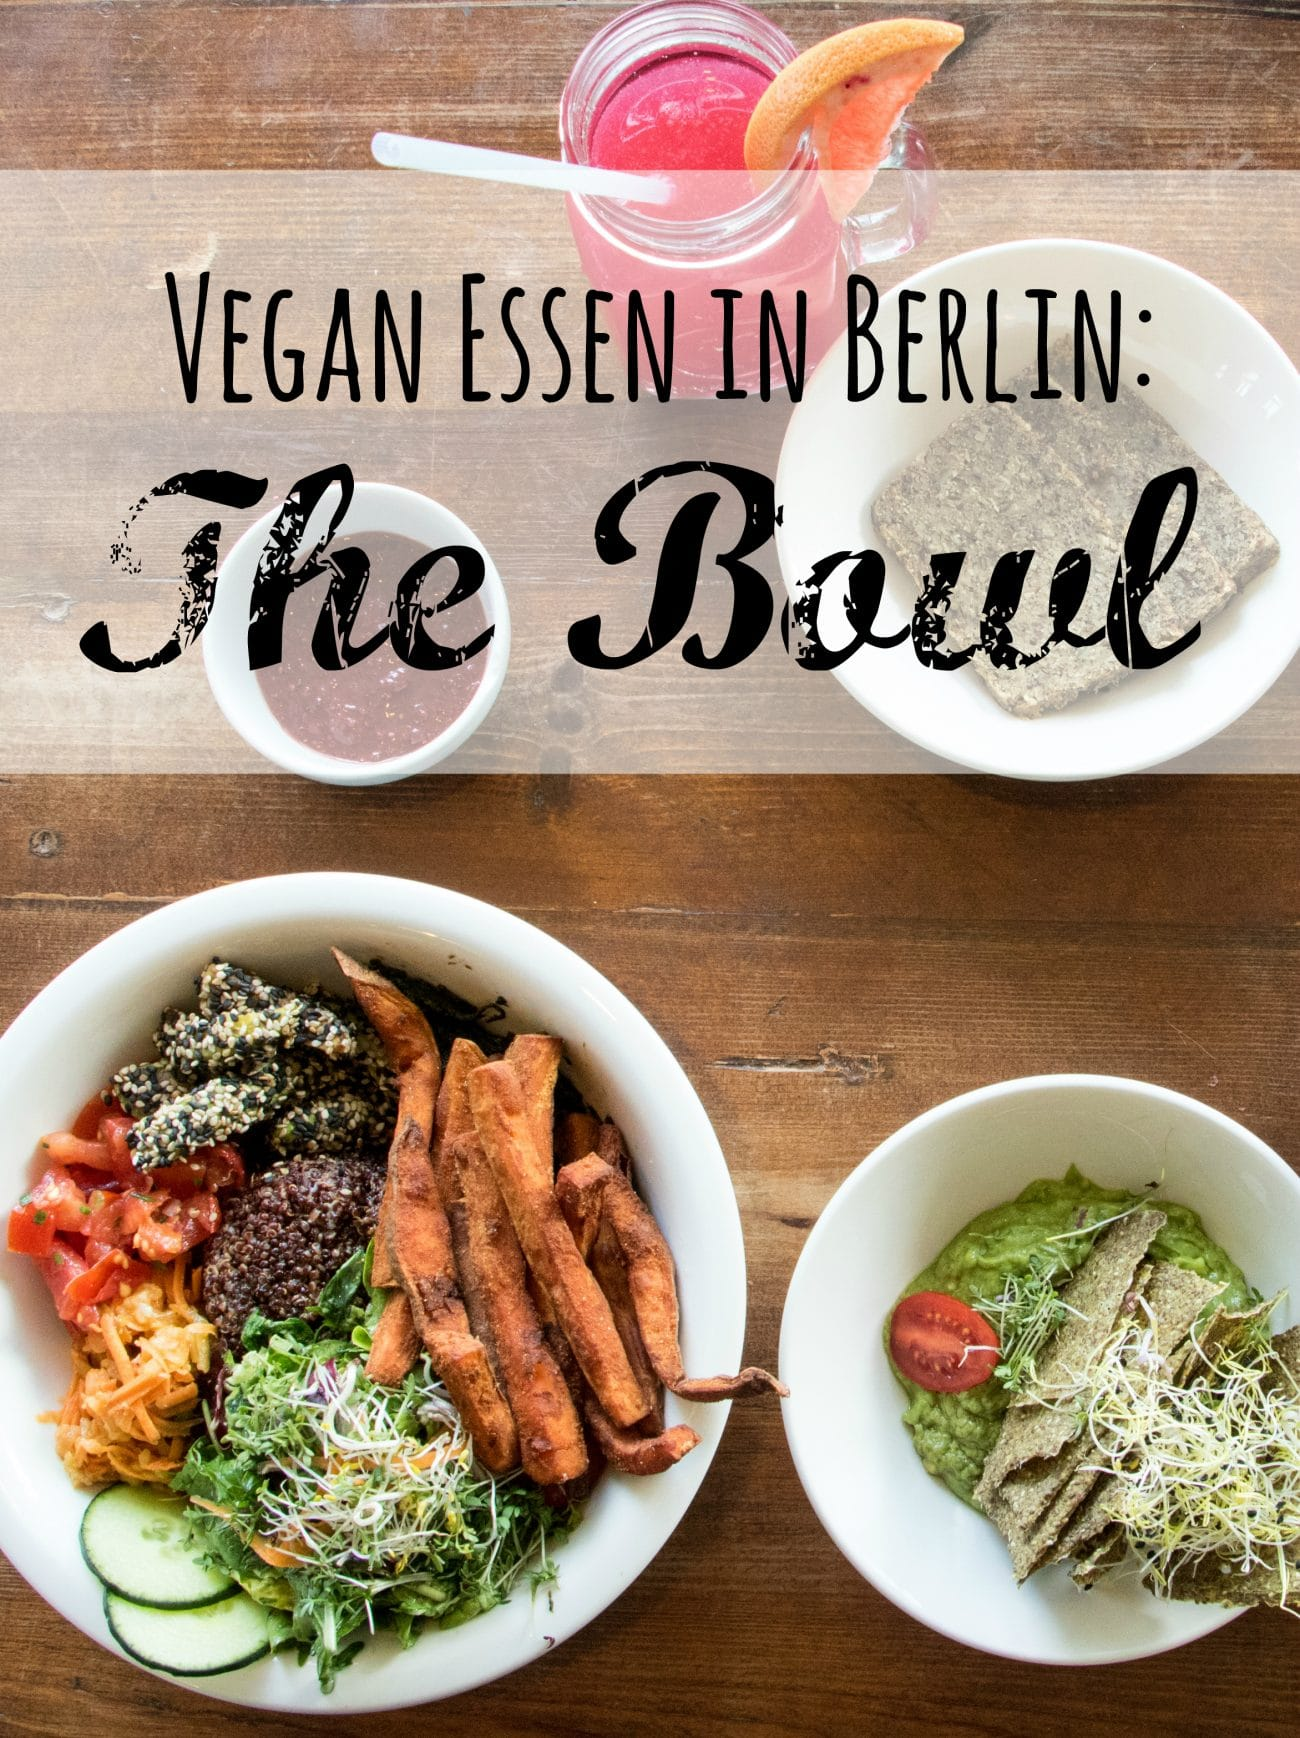 veganes restaurant berlin ein besuch bei the bowl passenger x hier jetzt woanders. Black Bedroom Furniture Sets. Home Design Ideas